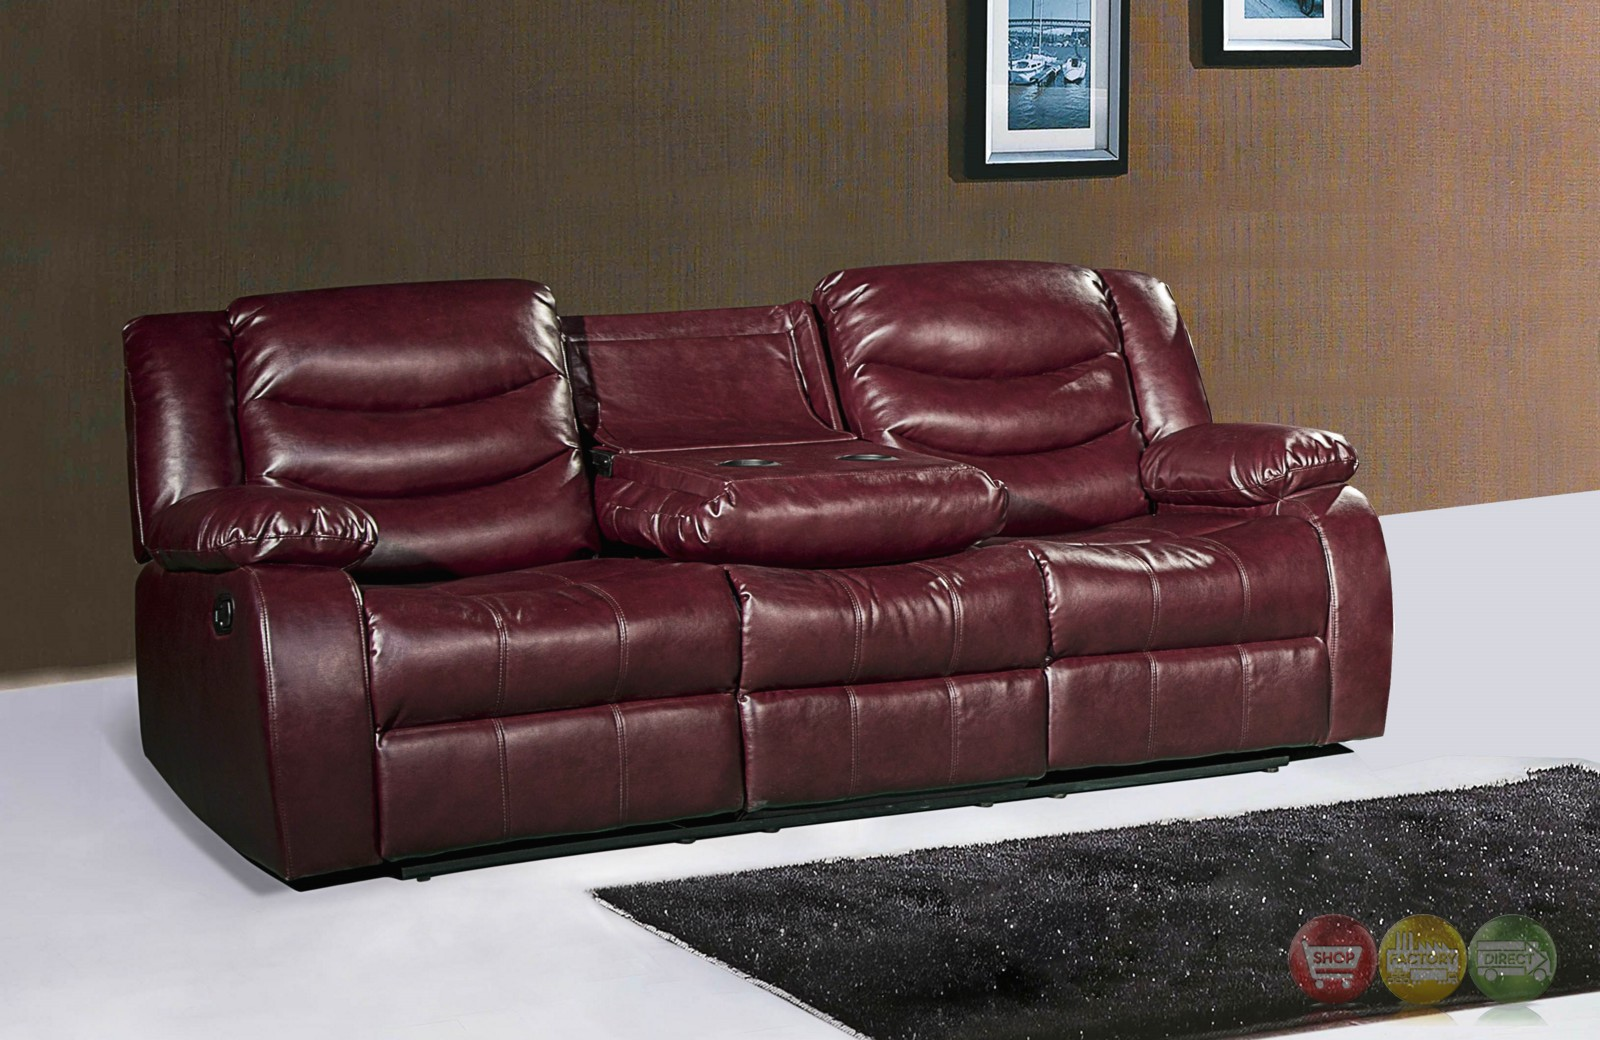 644burg Burgundy Leather Reclining Sofa With Drop Down Console